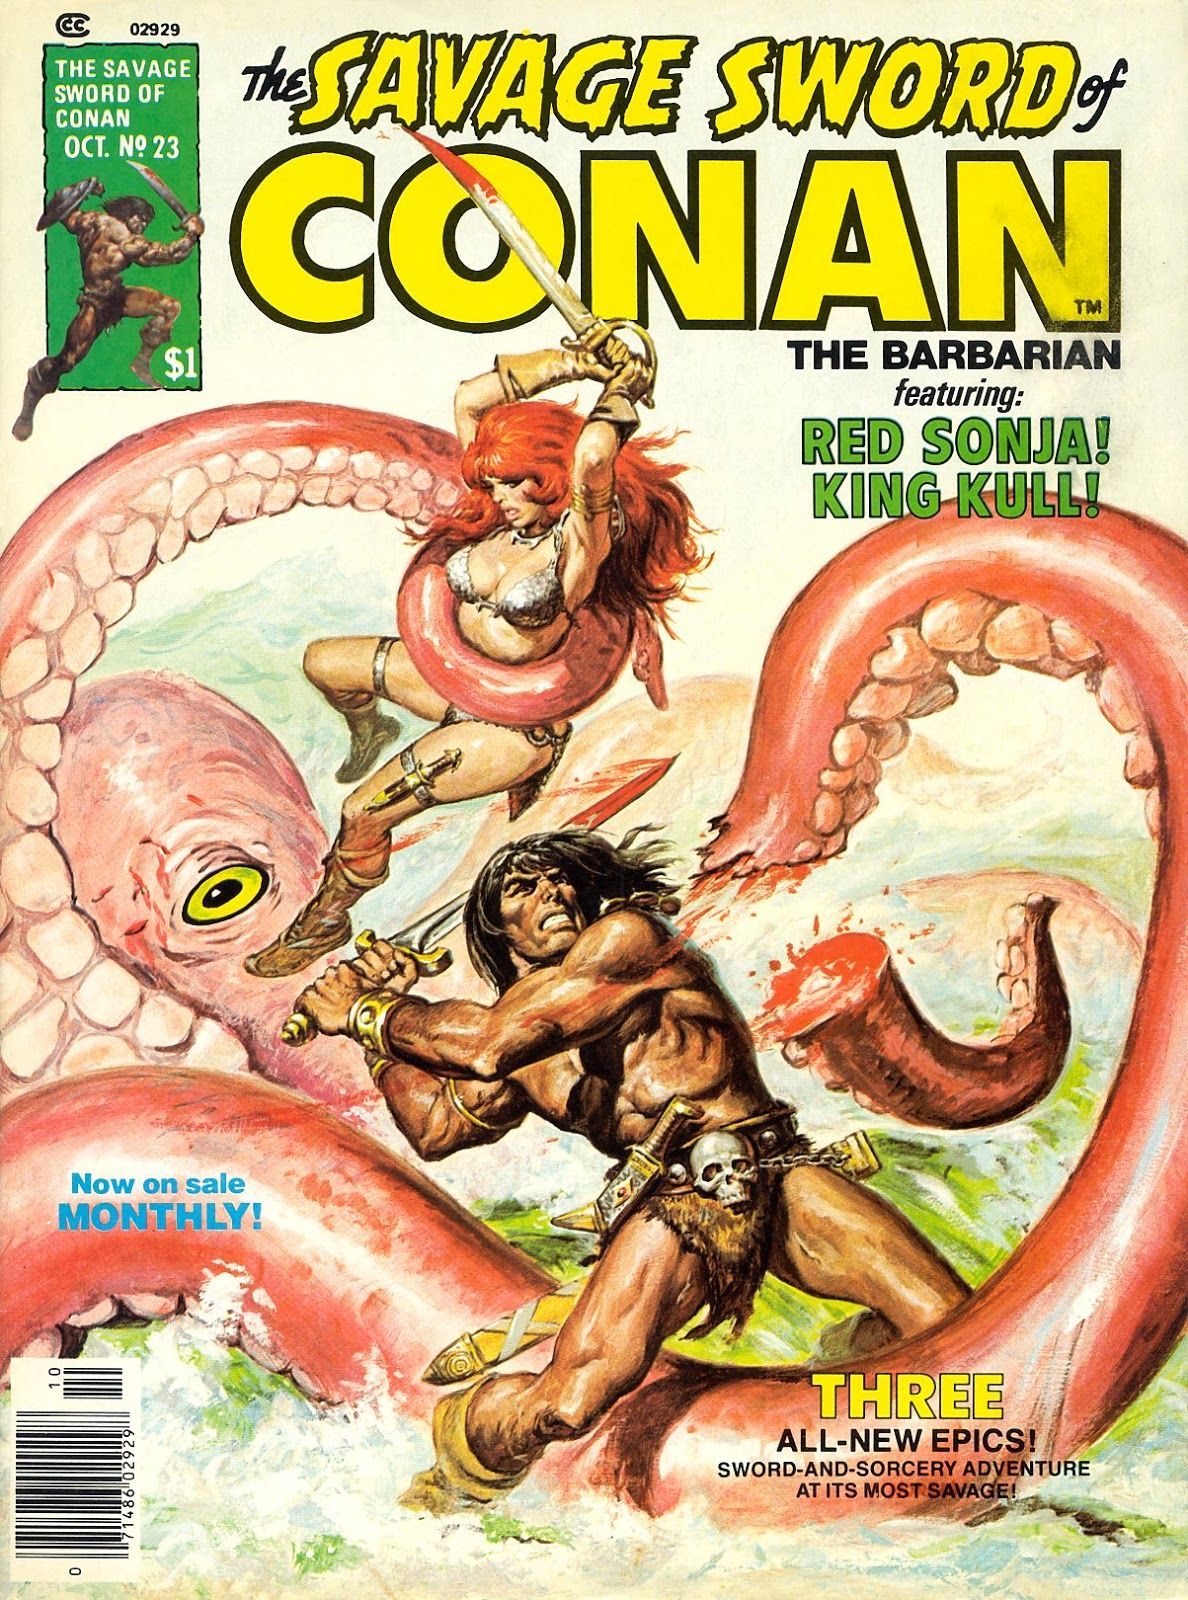 The Savage Sword Of Conan Issue #23 - Read The Savage Sword Of Conan Issue # 23 comic online in high qua… | Conan the barbarian, Conan the barbarian  comic, Barbarian